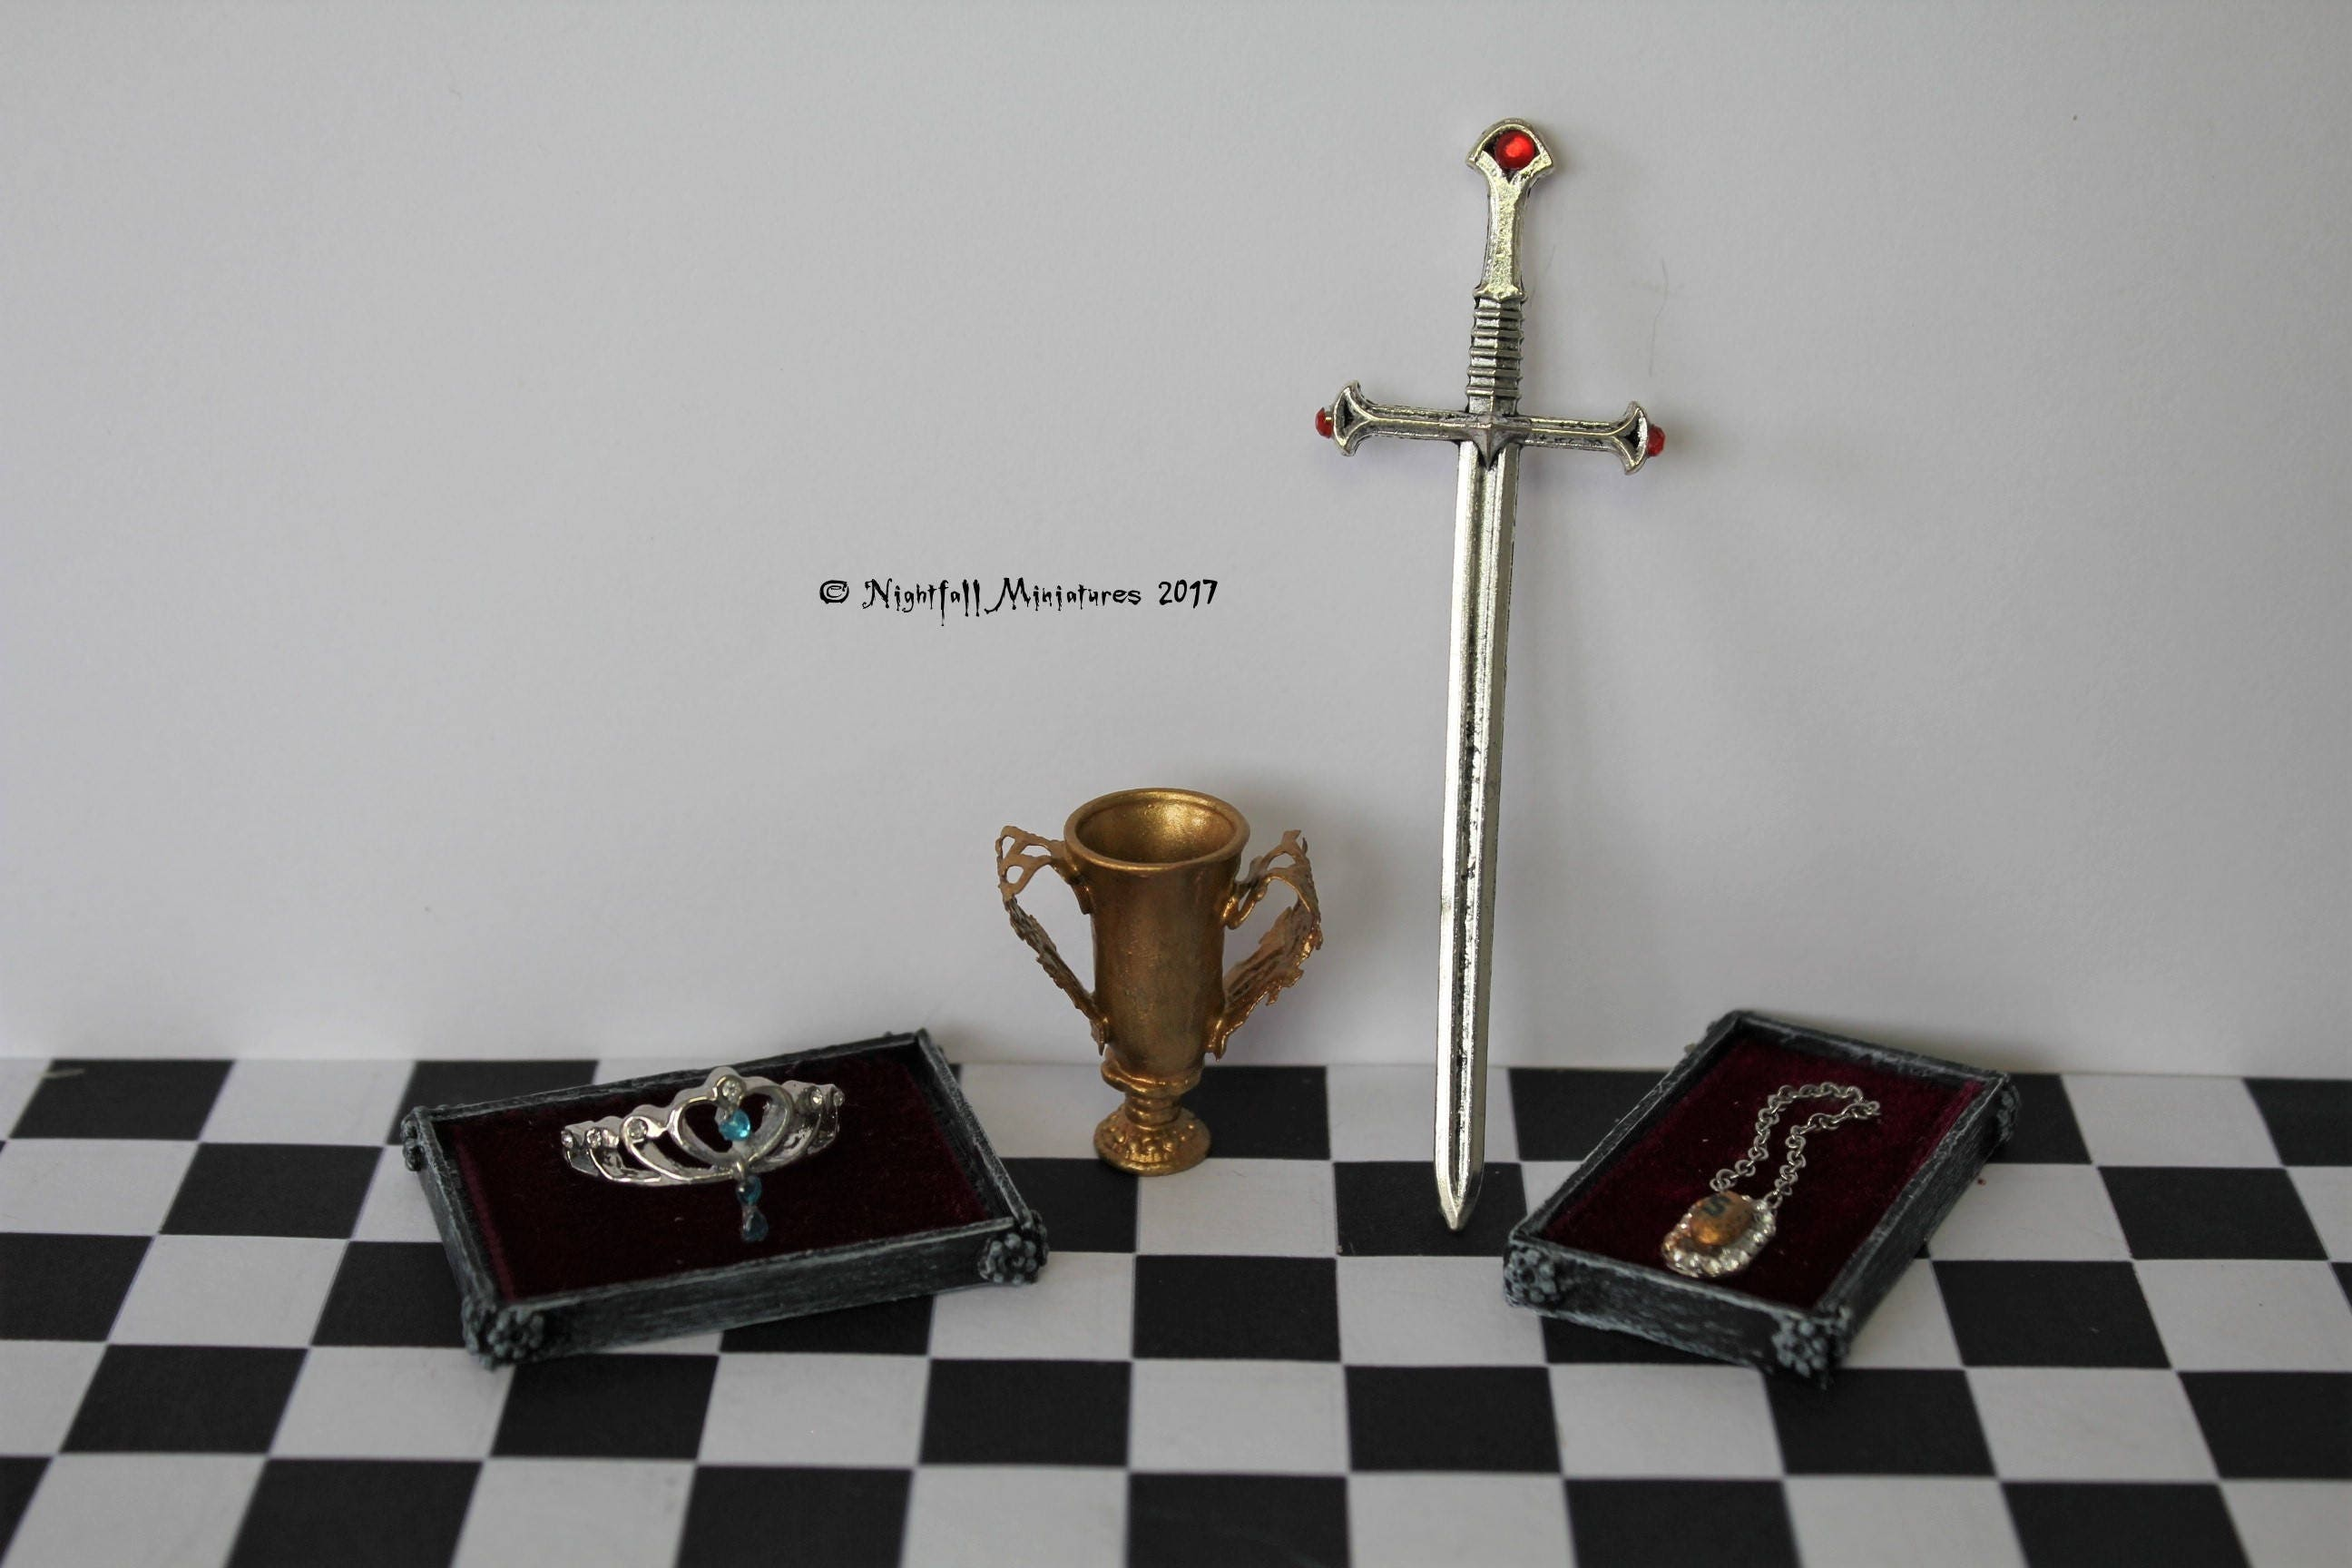 Dollhouse Miniature Magic Harry Potter Inspired Founder Relics in 112 scale